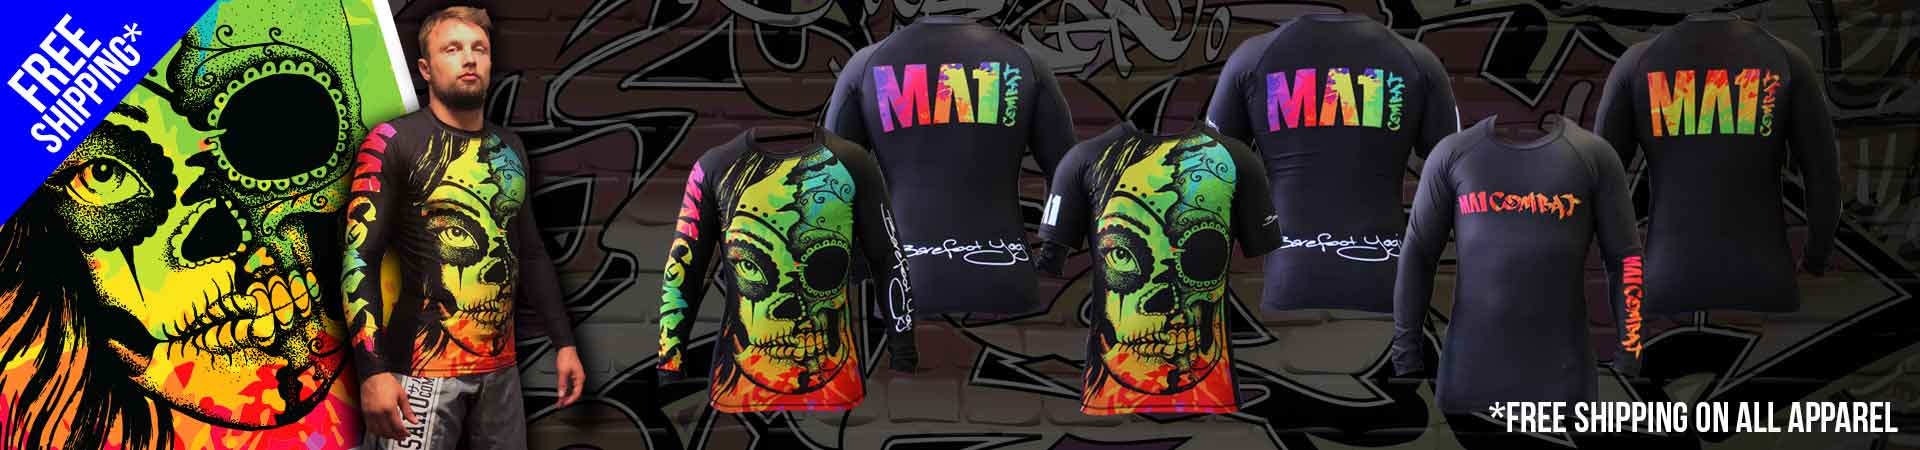 MA1 Barefoot Yogi & Combat Rash Guards FREE SHIPPING